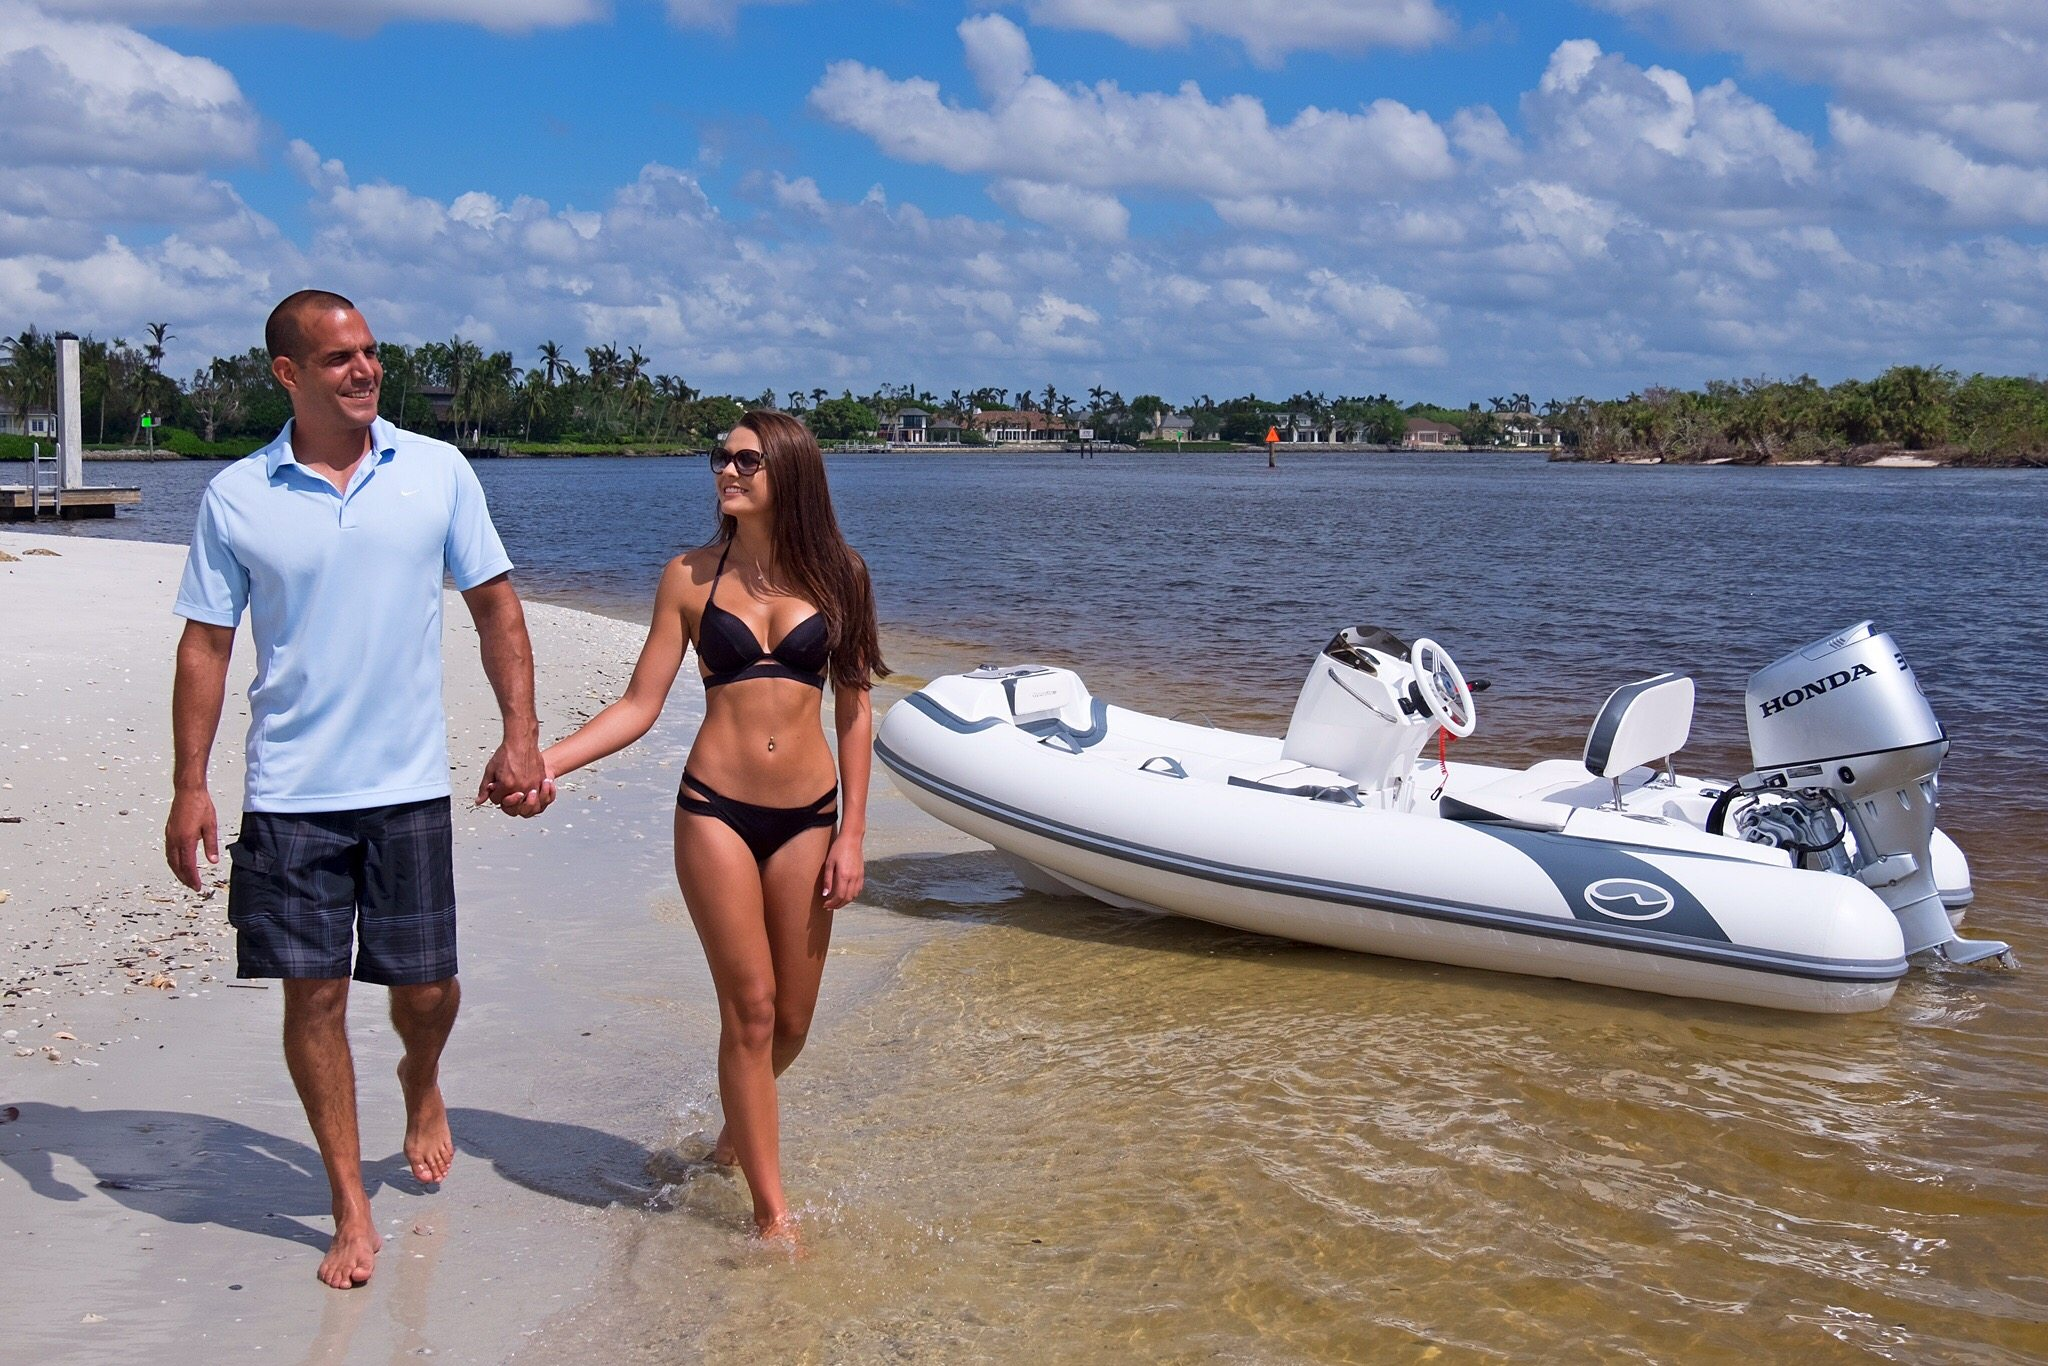 Walker Bay Boats will be unveiling the new Generation Light RIB (Generation LTE) at the Fort Lauderdale International Boat show on November 1st.